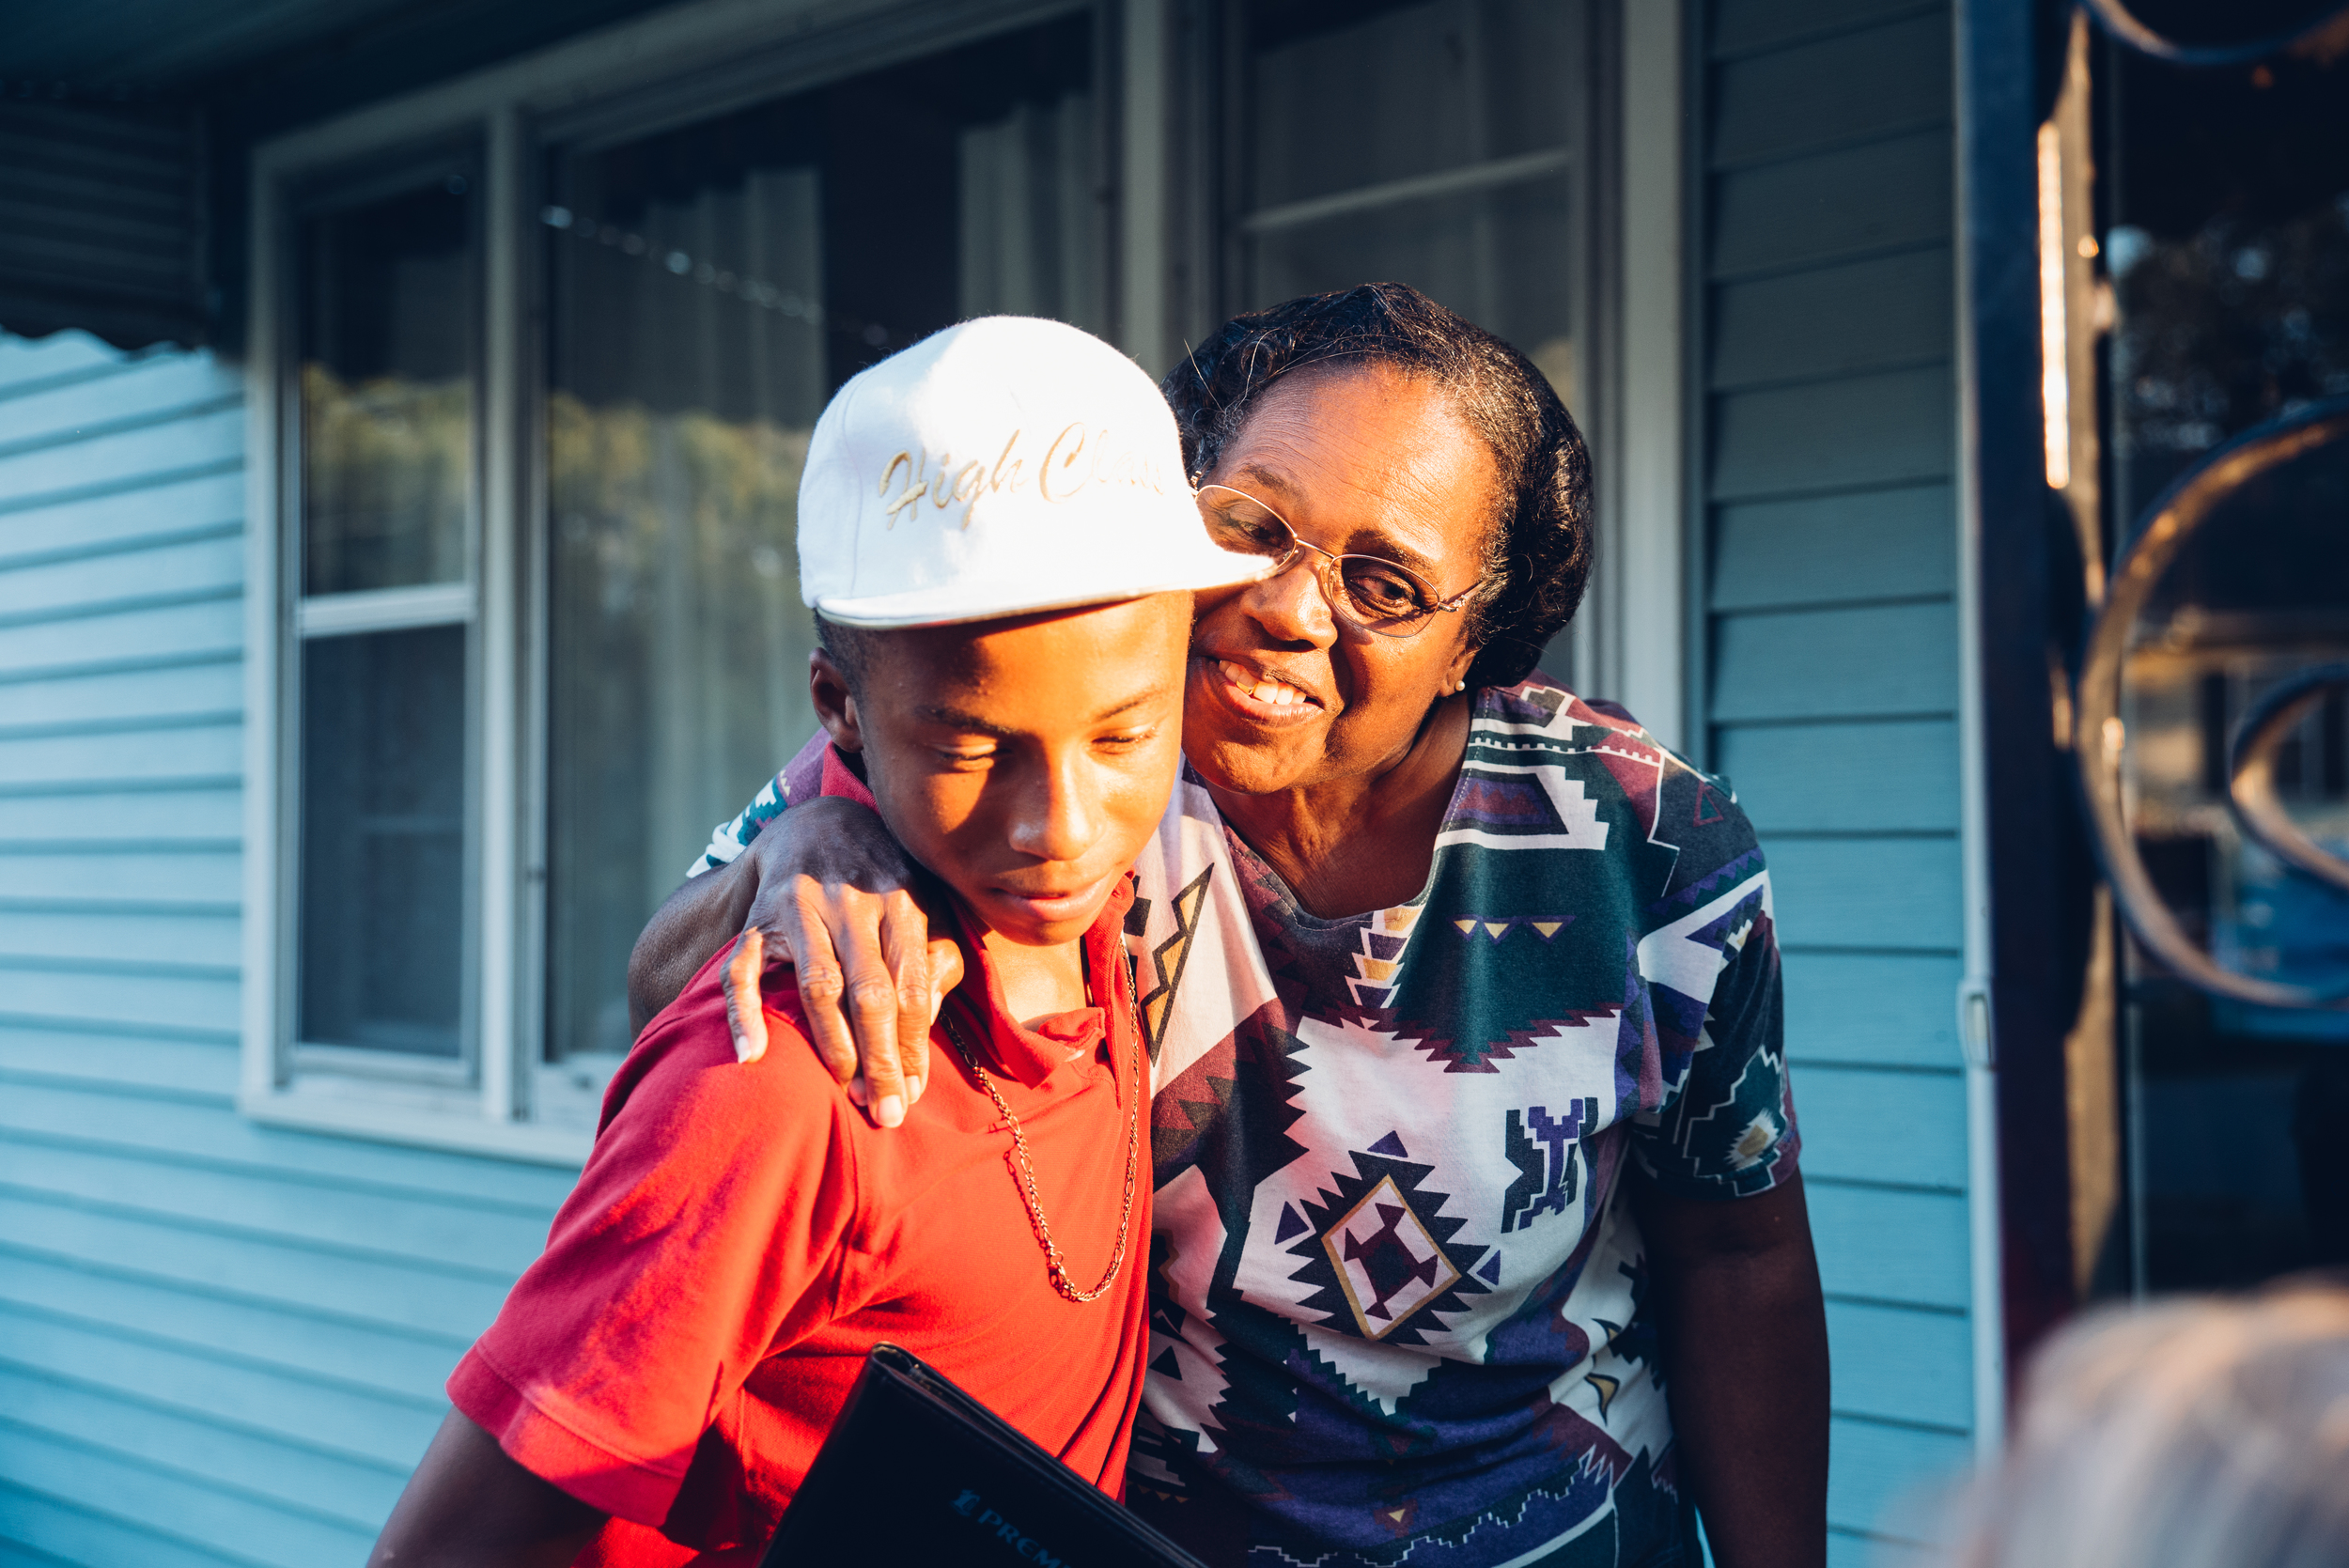 Mrs. Hampton gives Javias a hug after he delivers fresh turnip greens to her door. The experience was impactful for the youth and elderly alike. One student remarked that she was reminded of her own grandmother and aspired to spend more time with her.